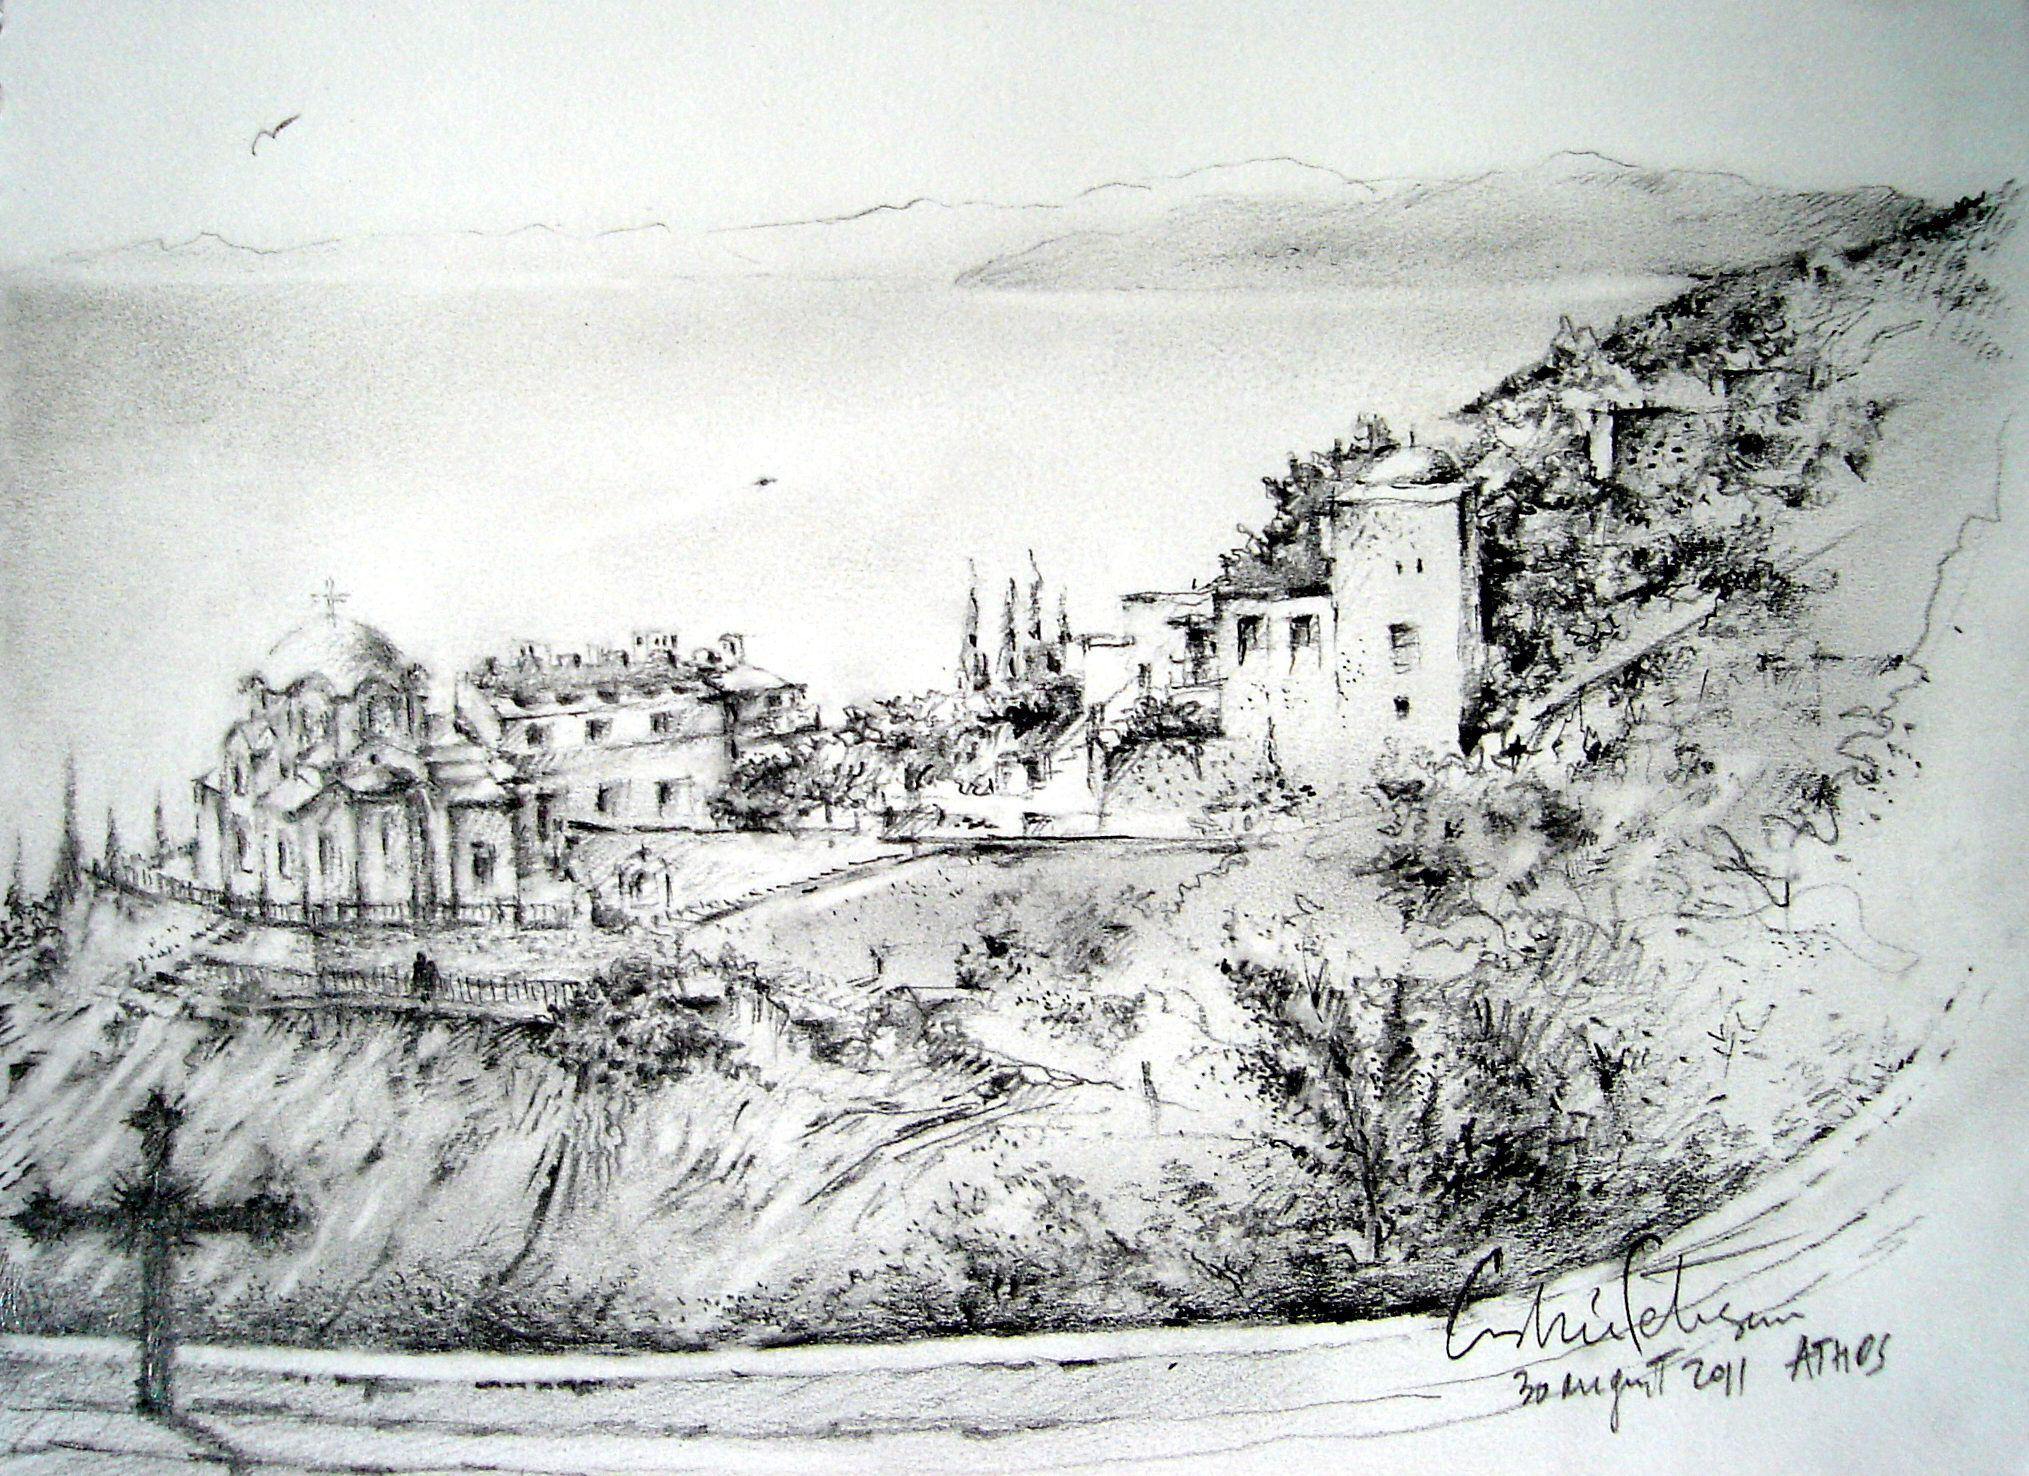 Filest george cloister in athos mountain 2011 drawing pencil jpg